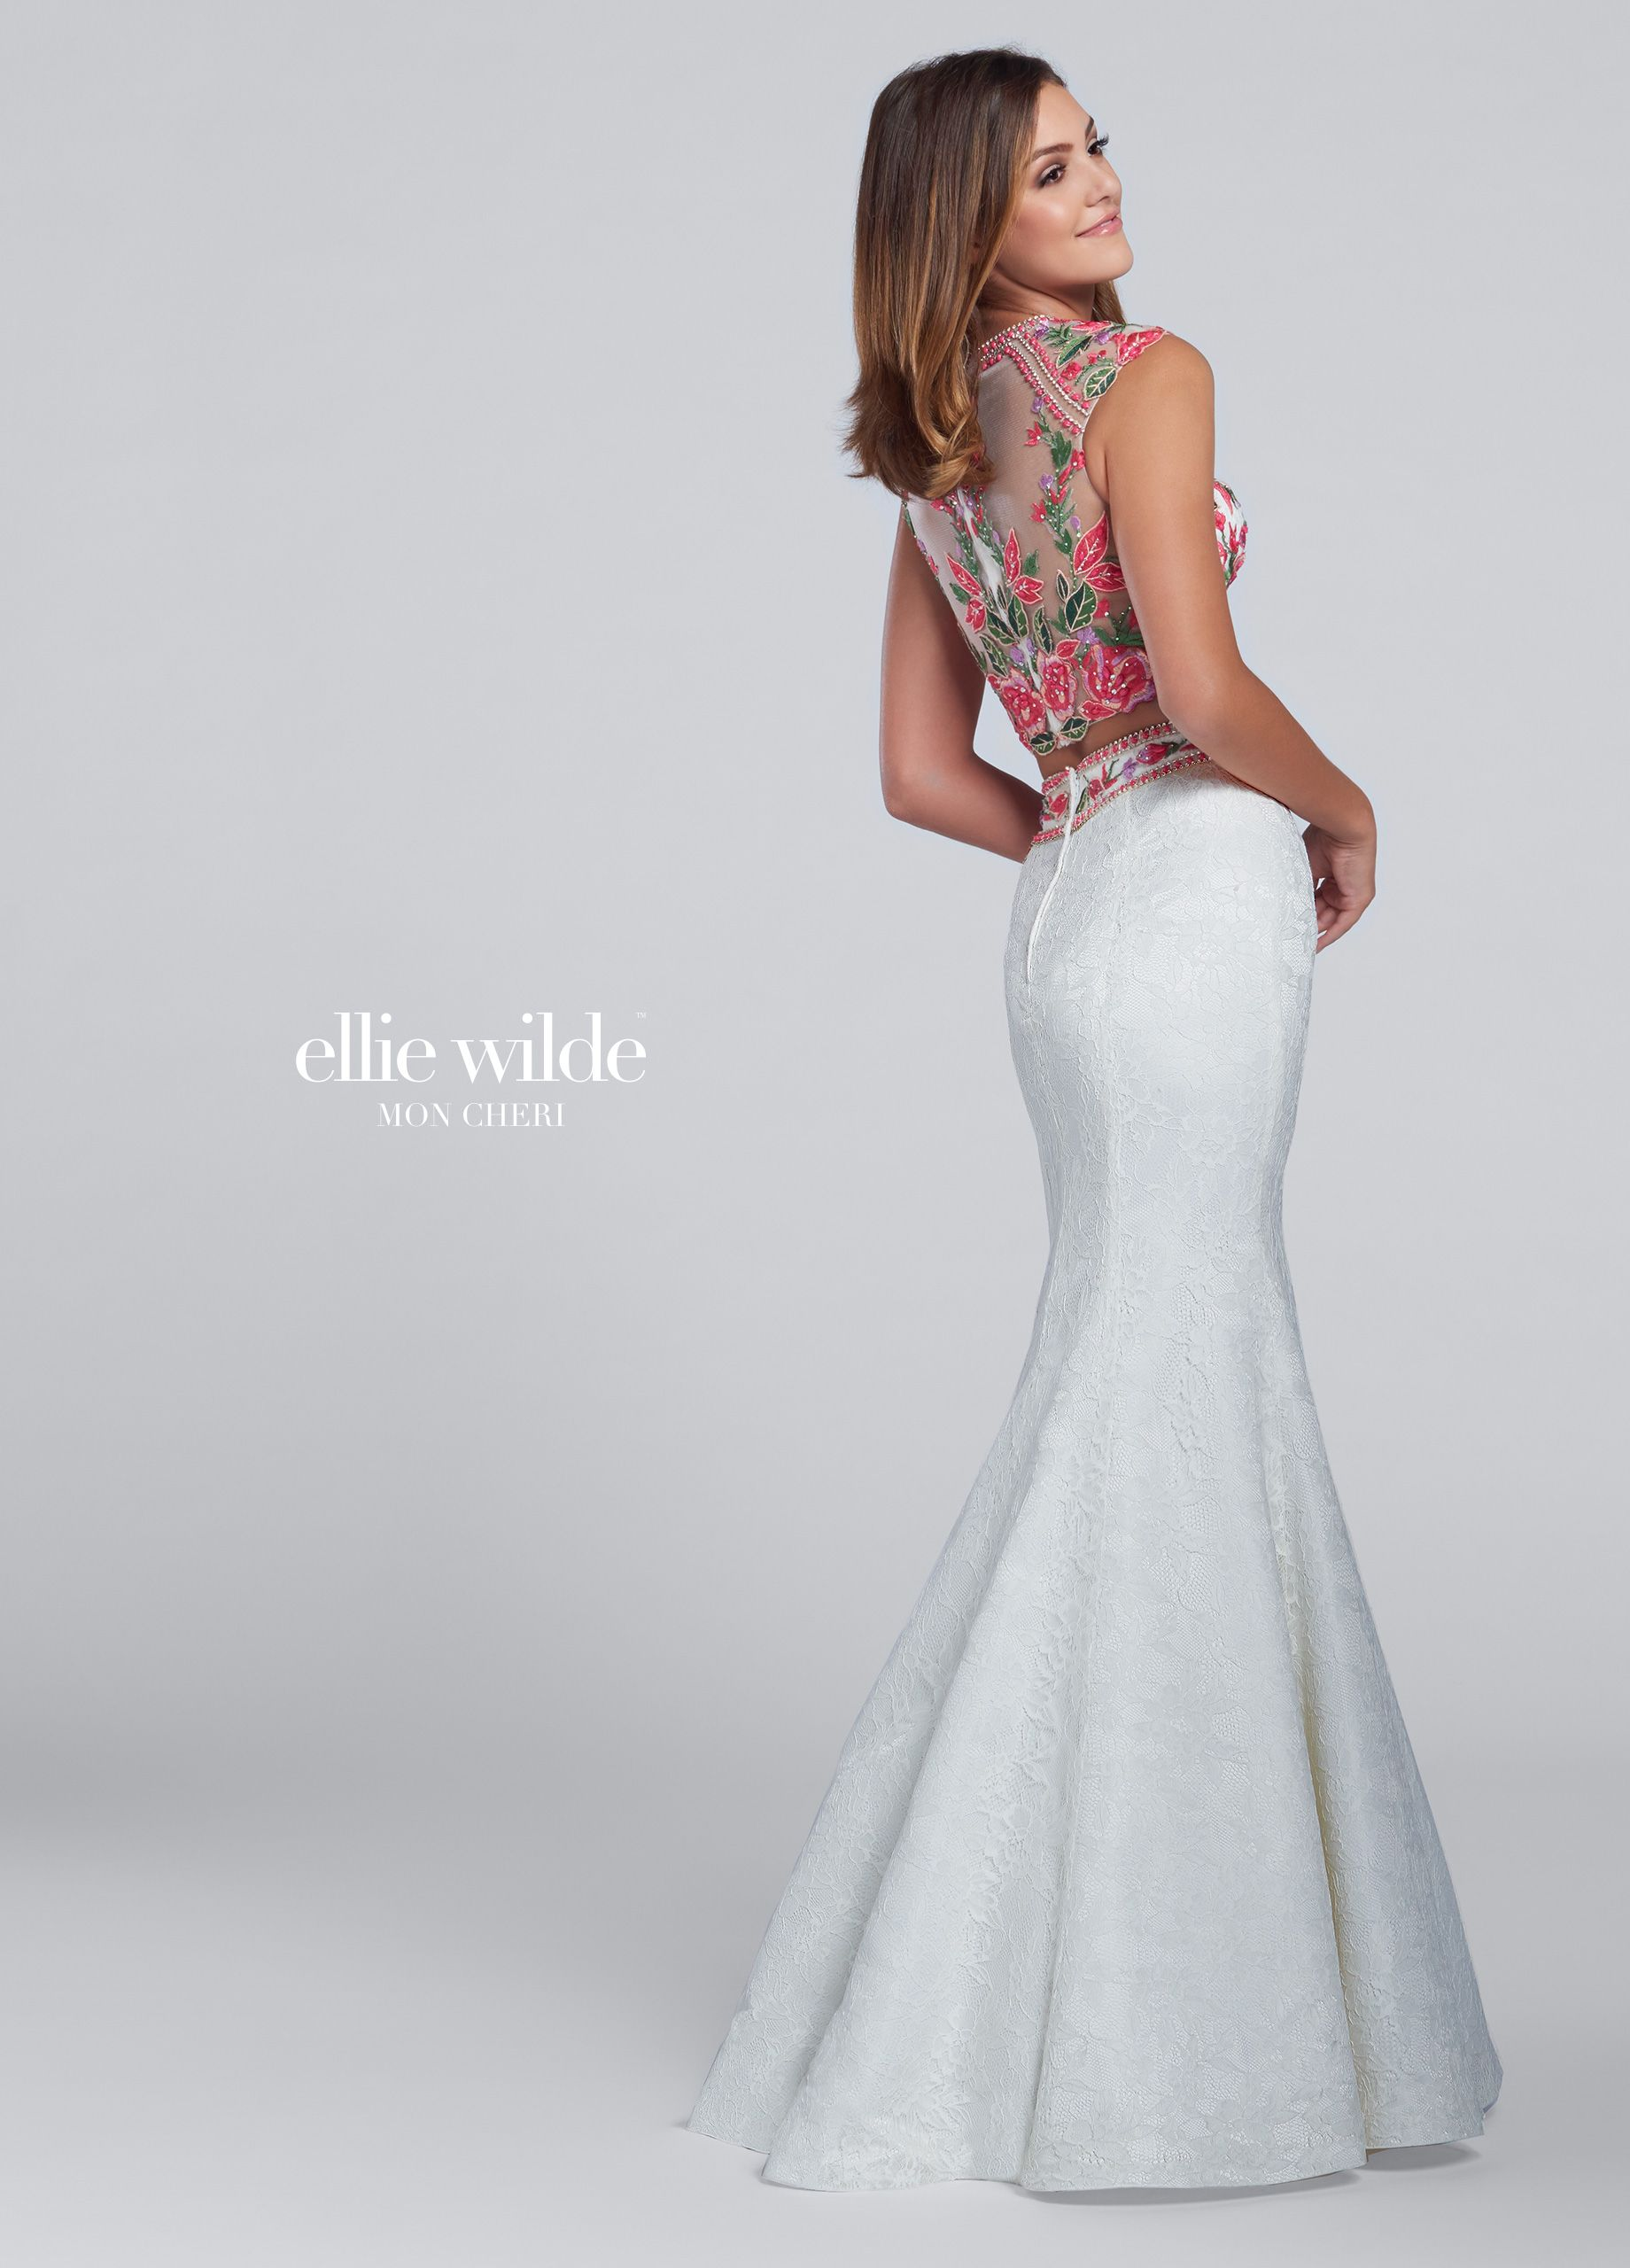 Ellie Wilde EW117030 - Two-piece lace dress set, cap sleeve illusion and floral embroidered appliquéd cropped top with jewel neckline and sheer back, lace overlay mermaid skirt with high waist embroidery.